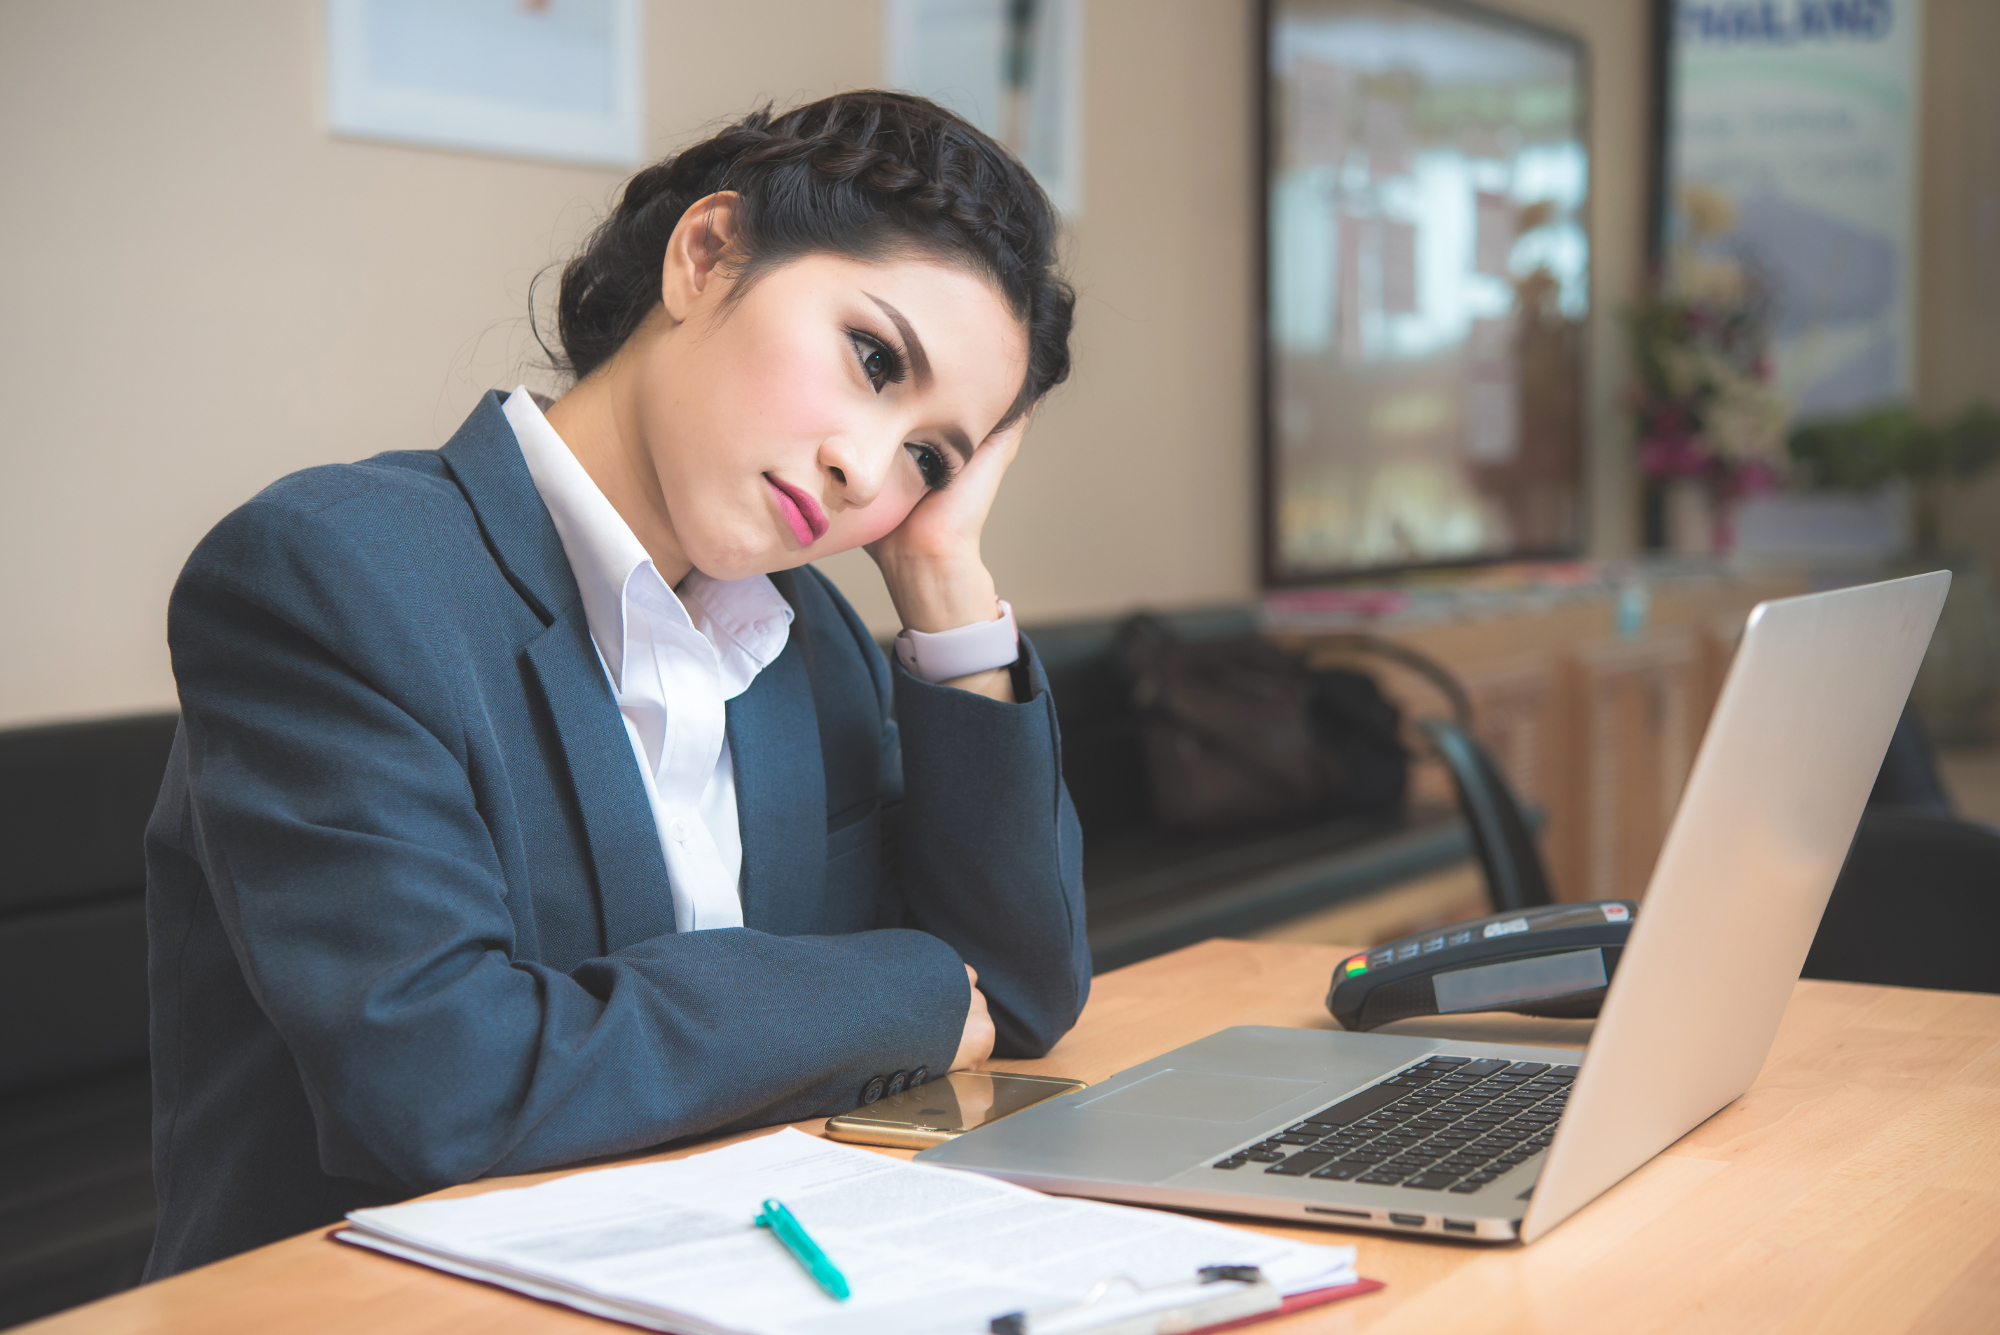 Workplace Distractions: Social Media & the Internet